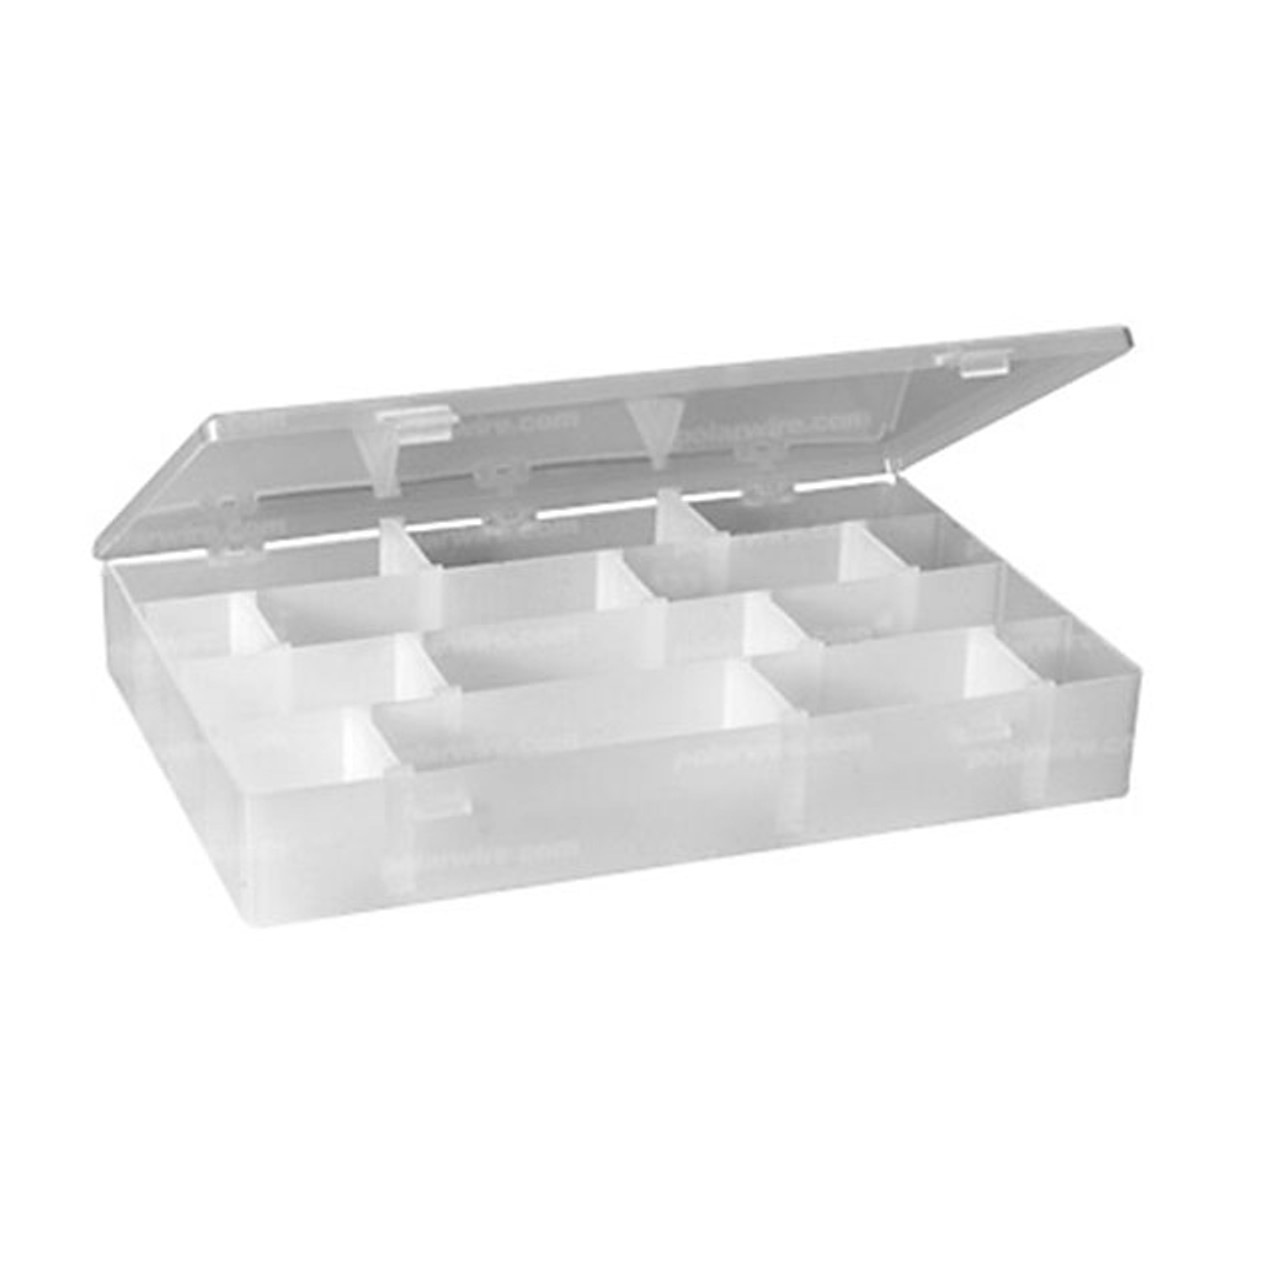 24-hole clear storage box with 20 removable dividers for organizing and storing small parts and kits